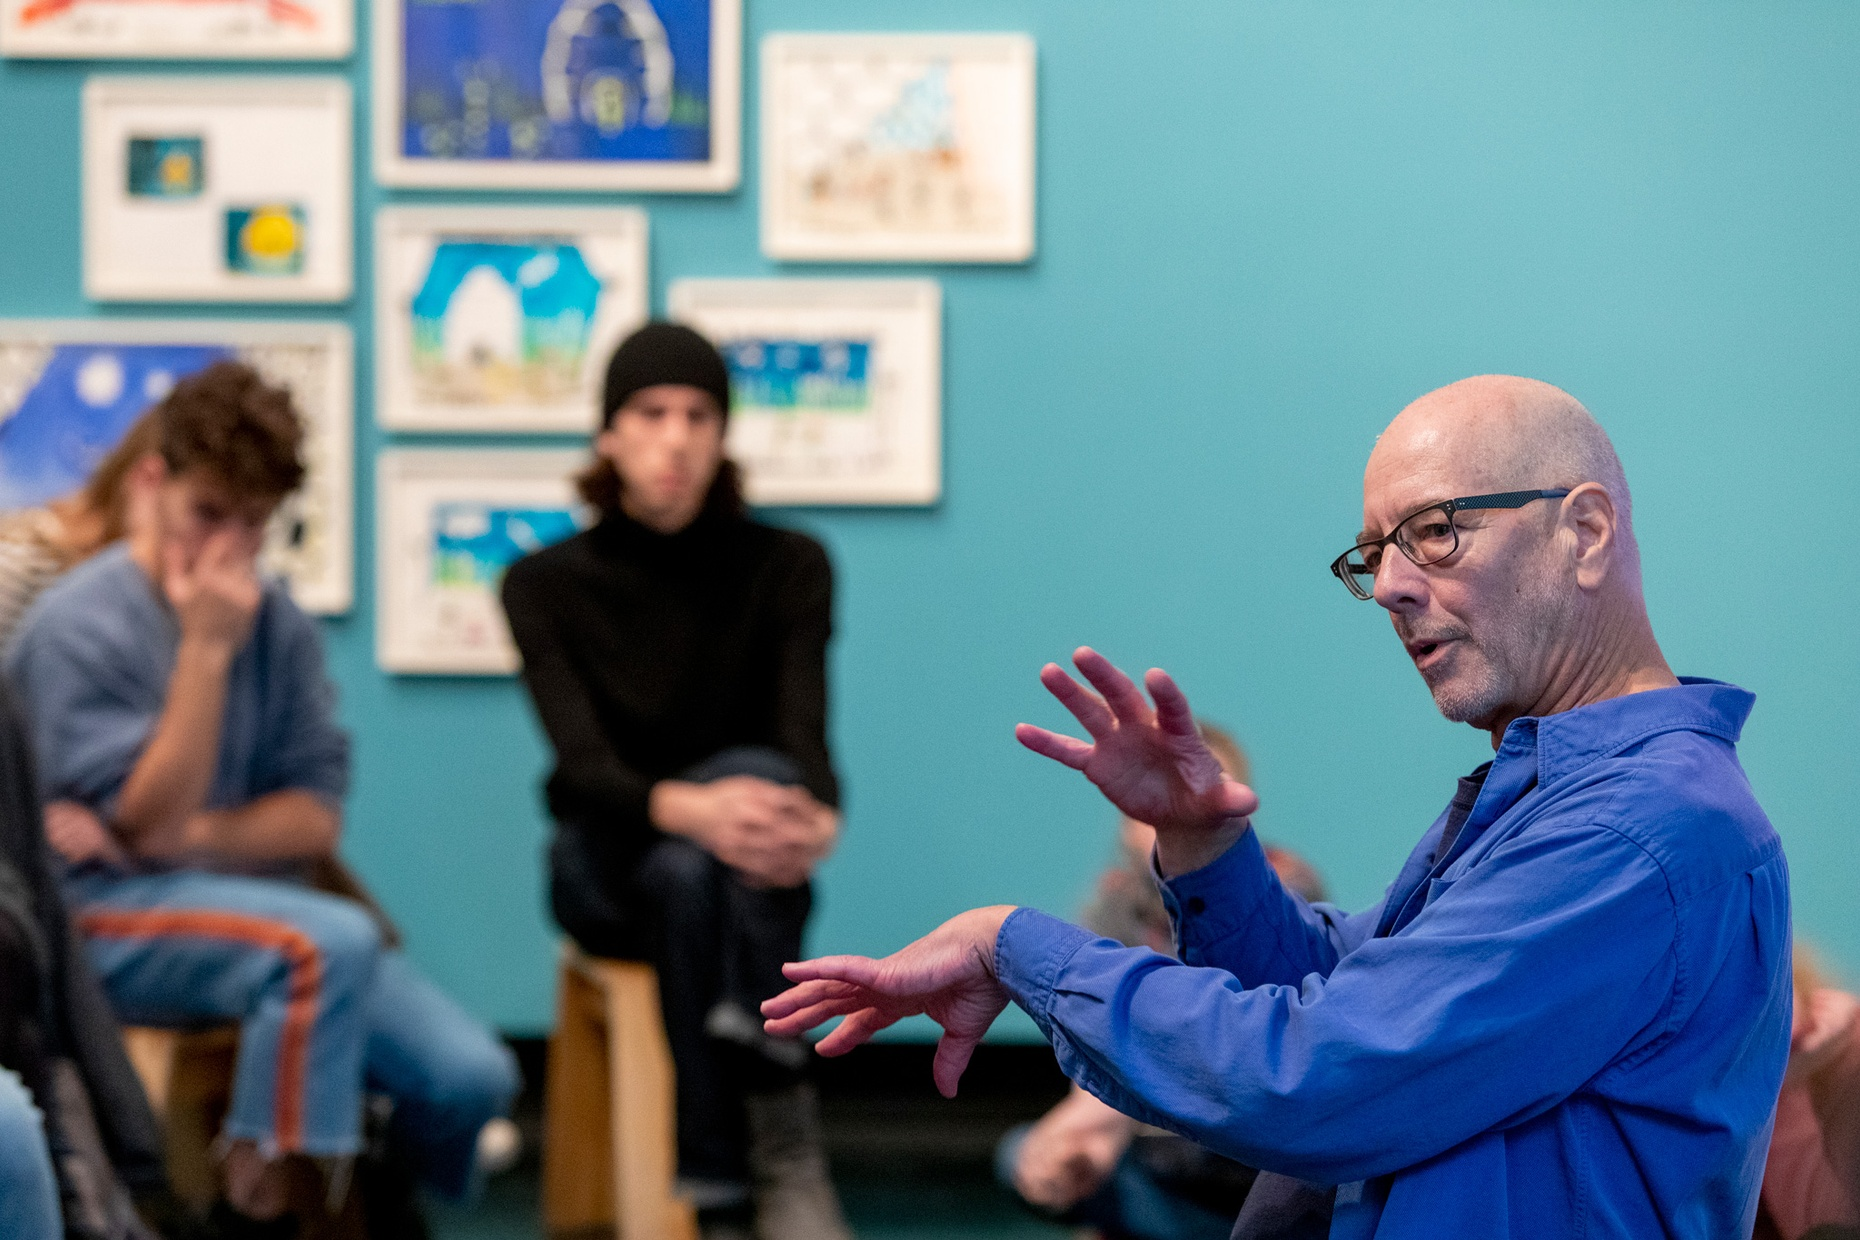 A white, older male talks to a group of people in front of a blue wall.